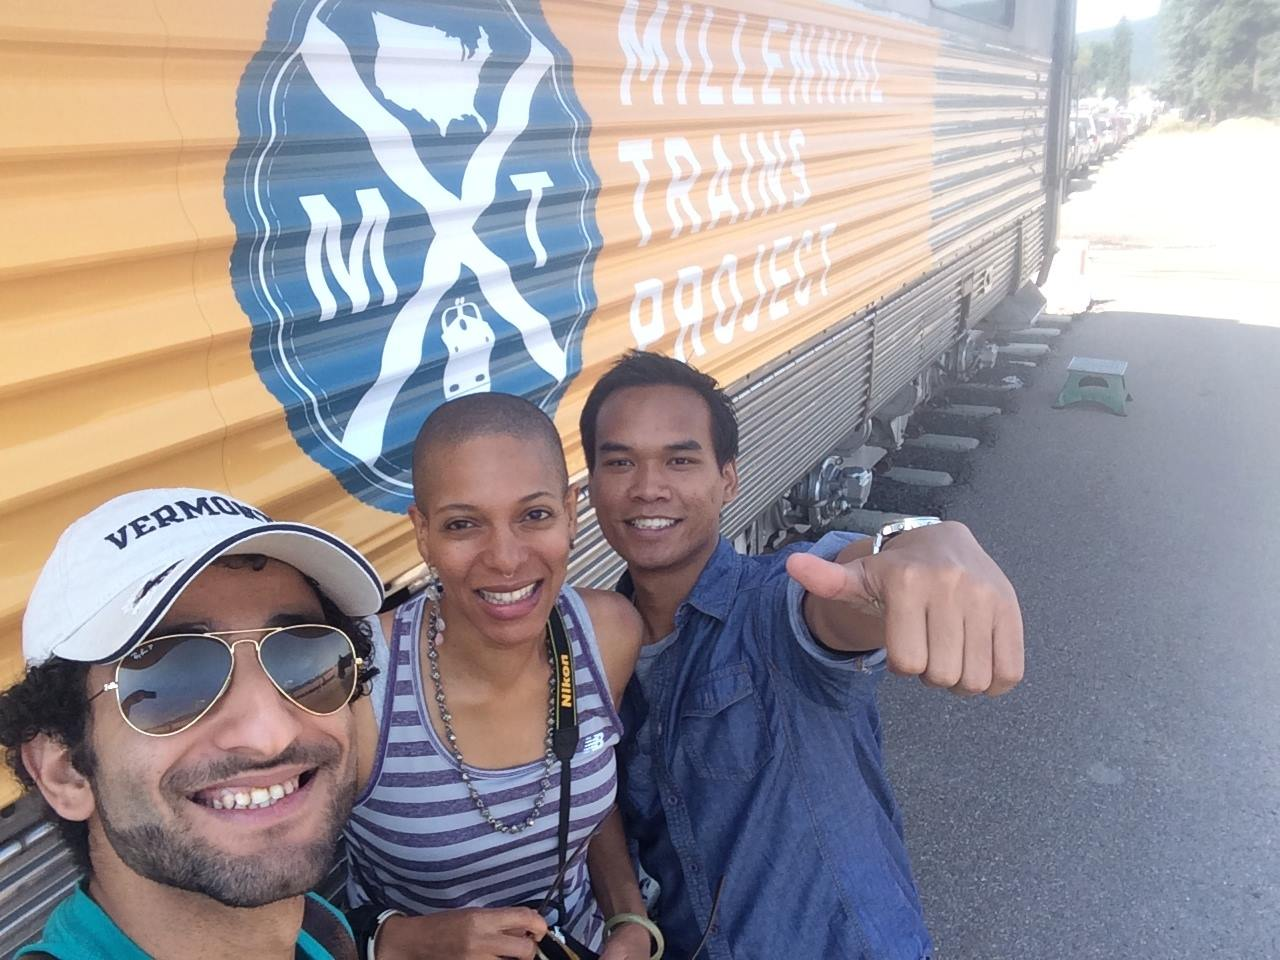 8/9/14  | MTP Participants Ammar Aqlan, PheOnix RuachShaddai, and Alyas Widita outside our train in Whitefish, MT.